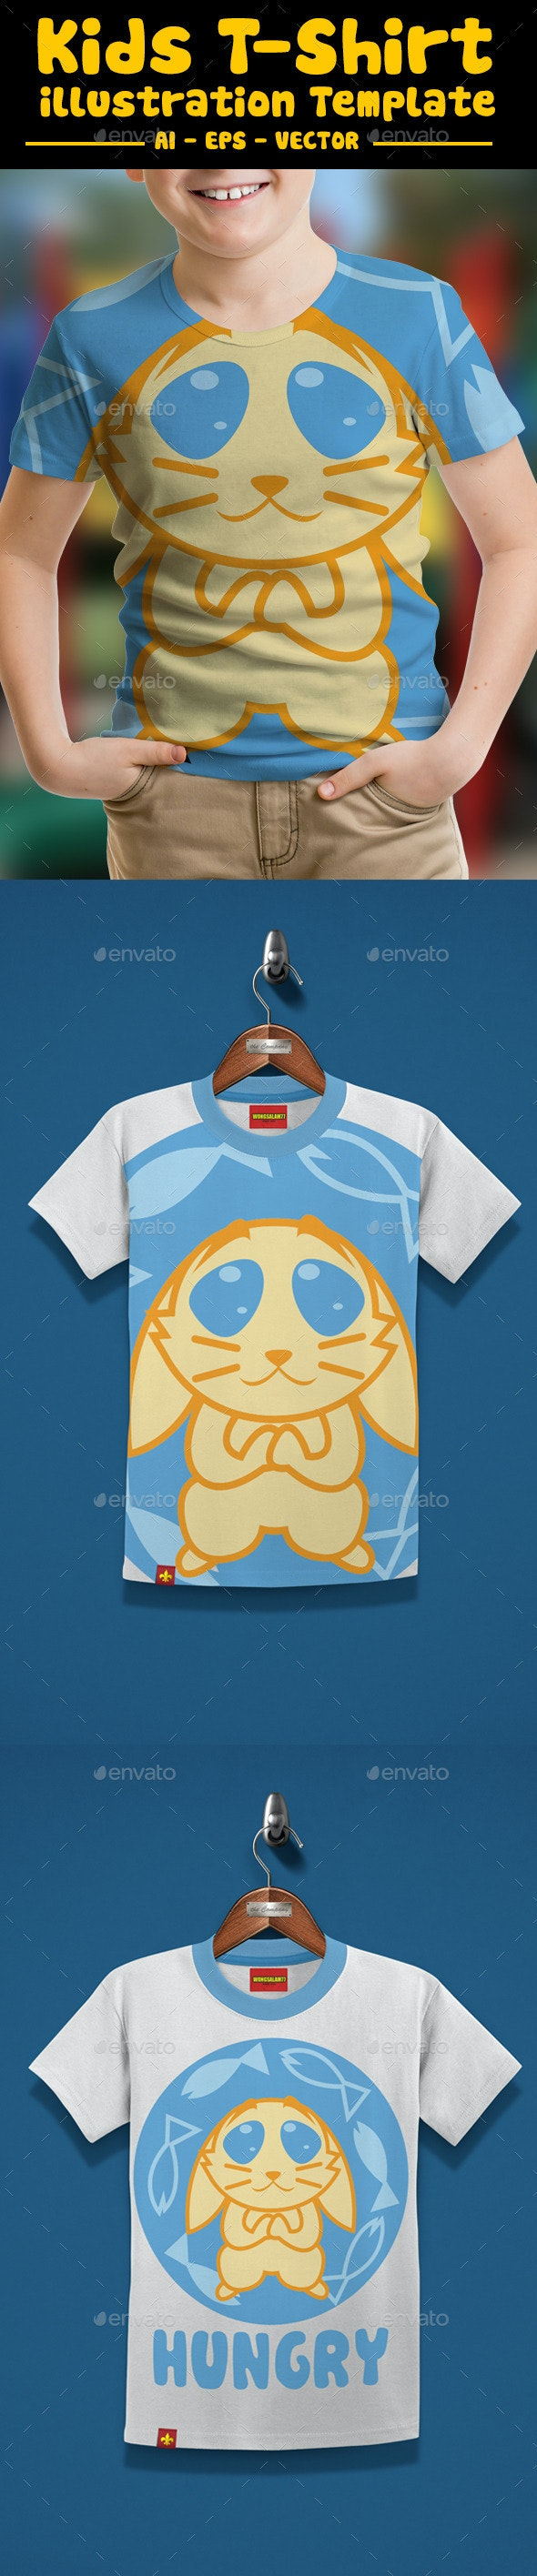 Kitty Kids T-Shirt Design